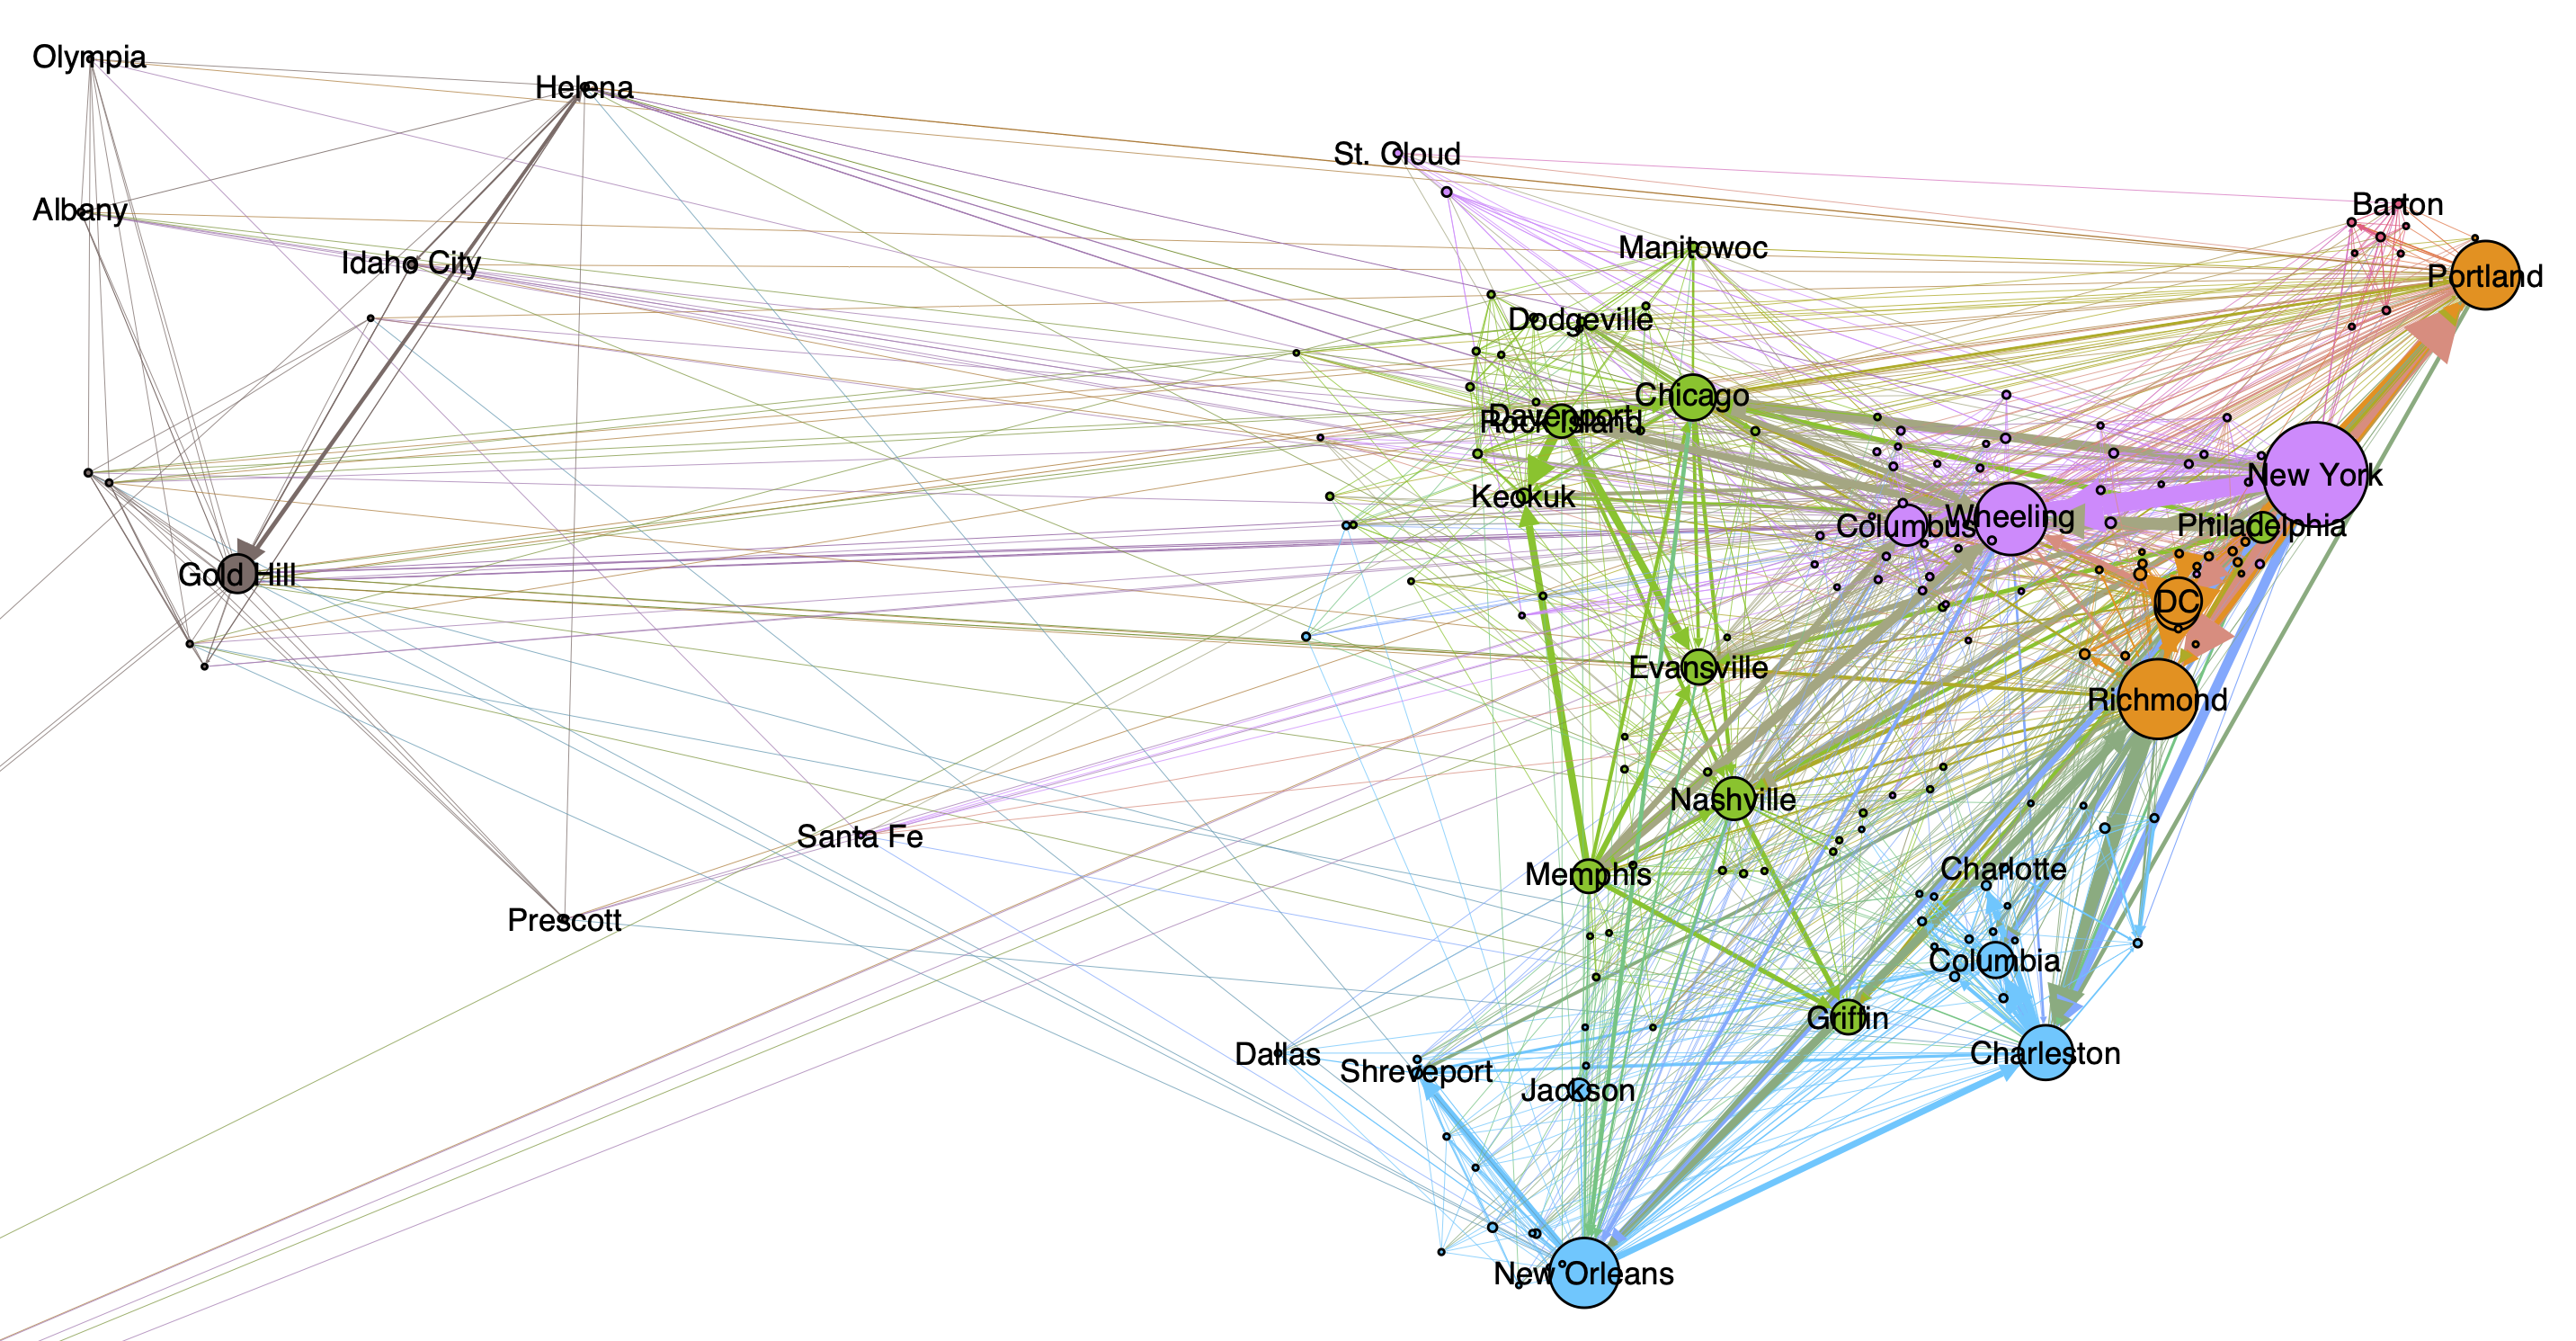 A network graph of US newspapers based on information cascades